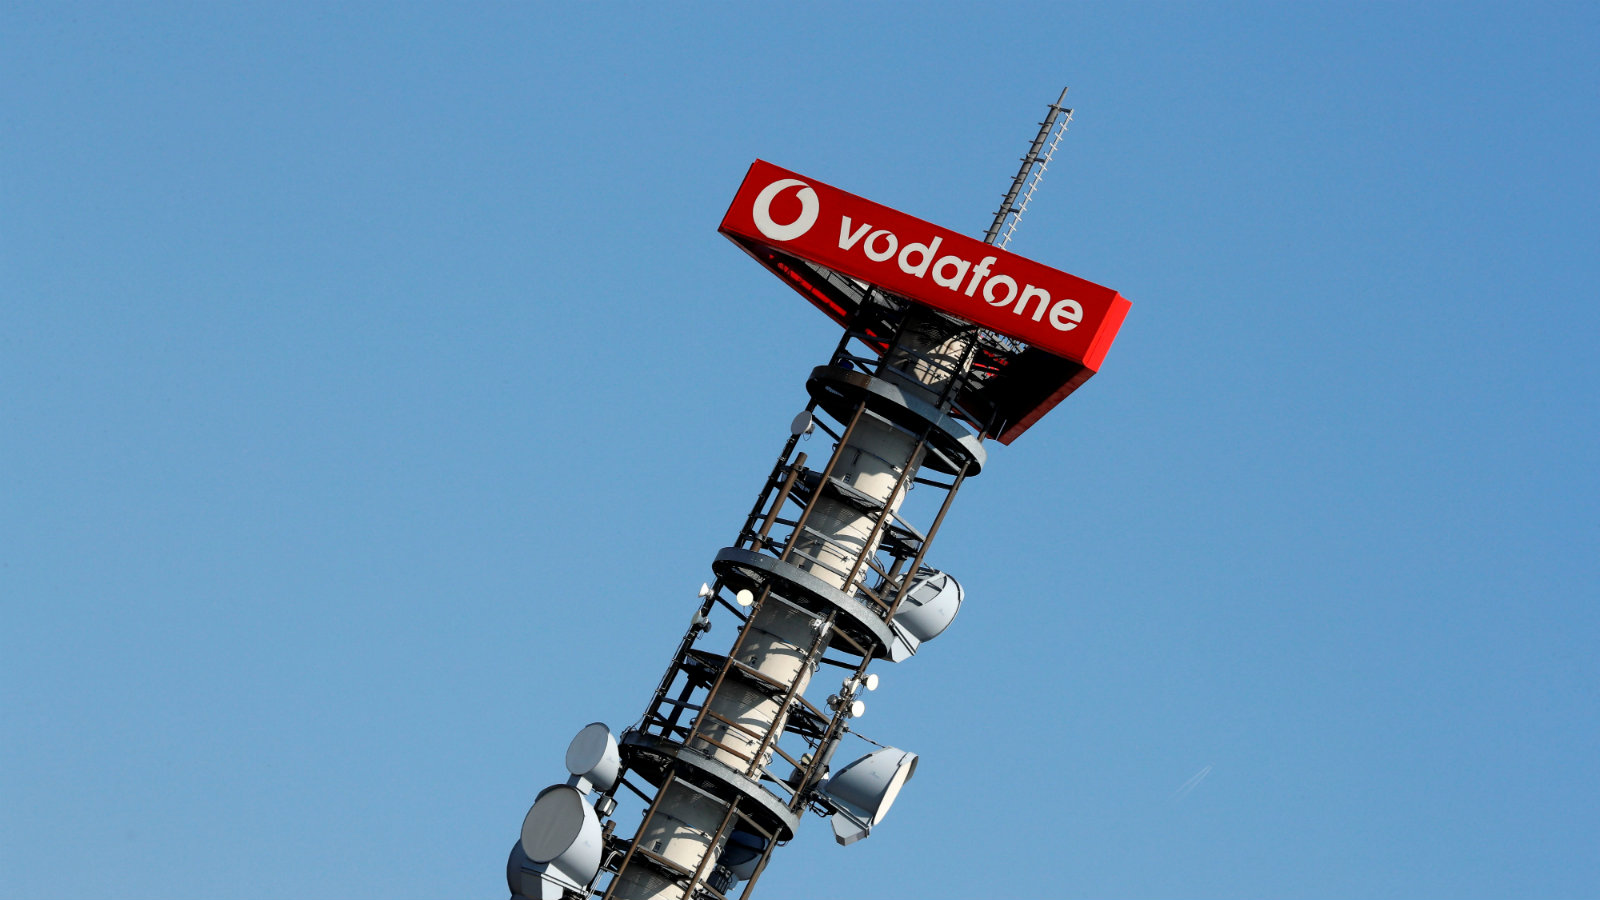 As Vodafone Idea bleeds, only Jio and Airtel may be left in India